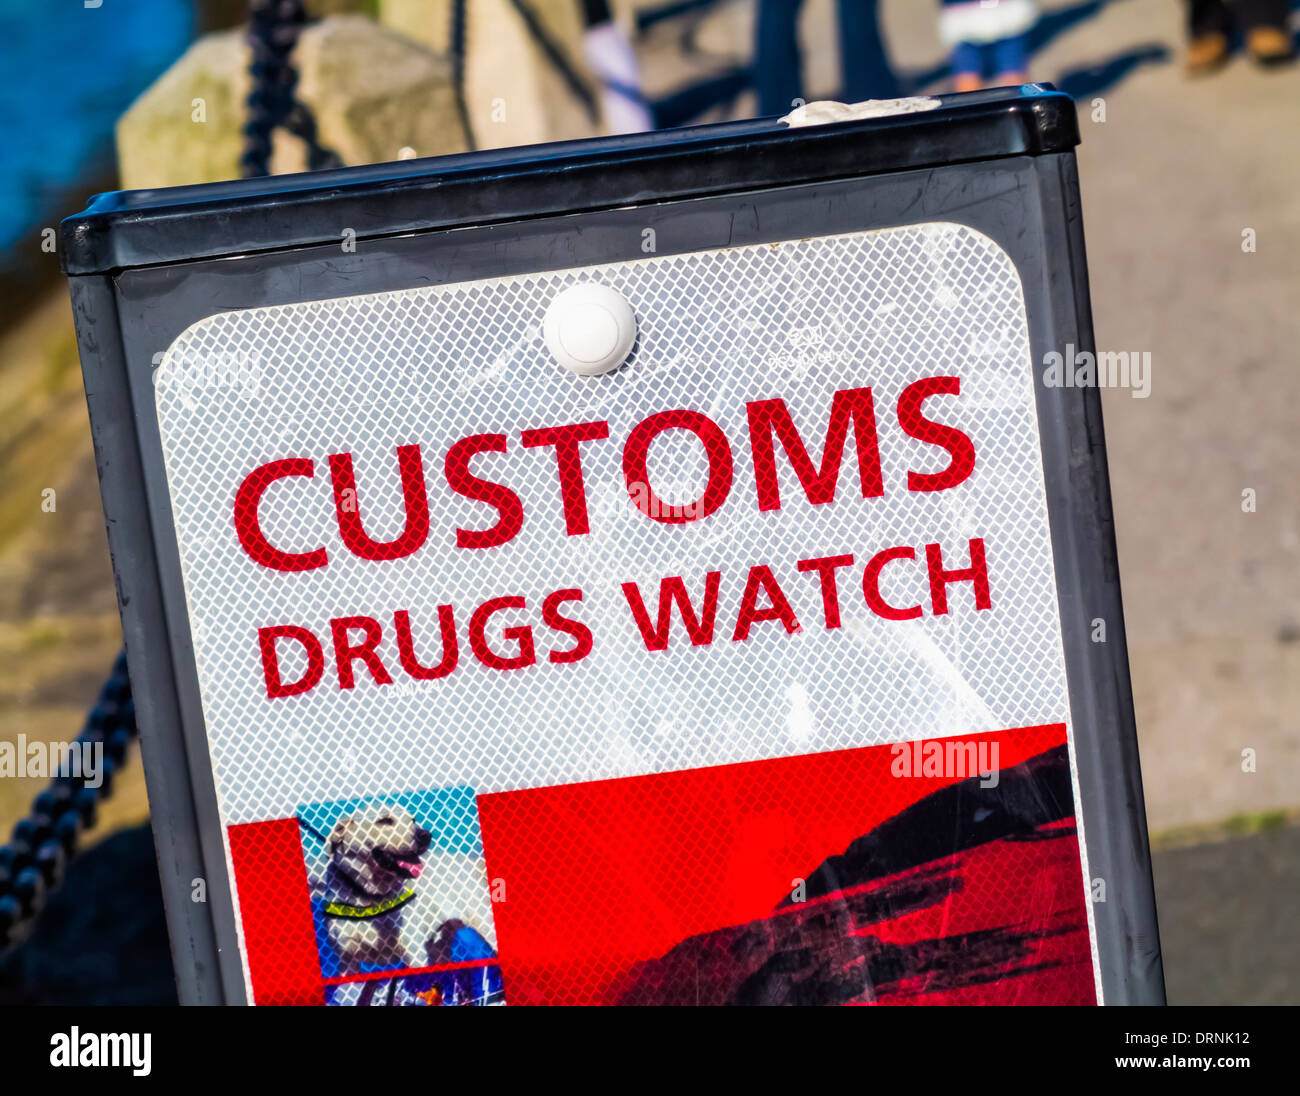 Les douanes watch sign Photo Stock